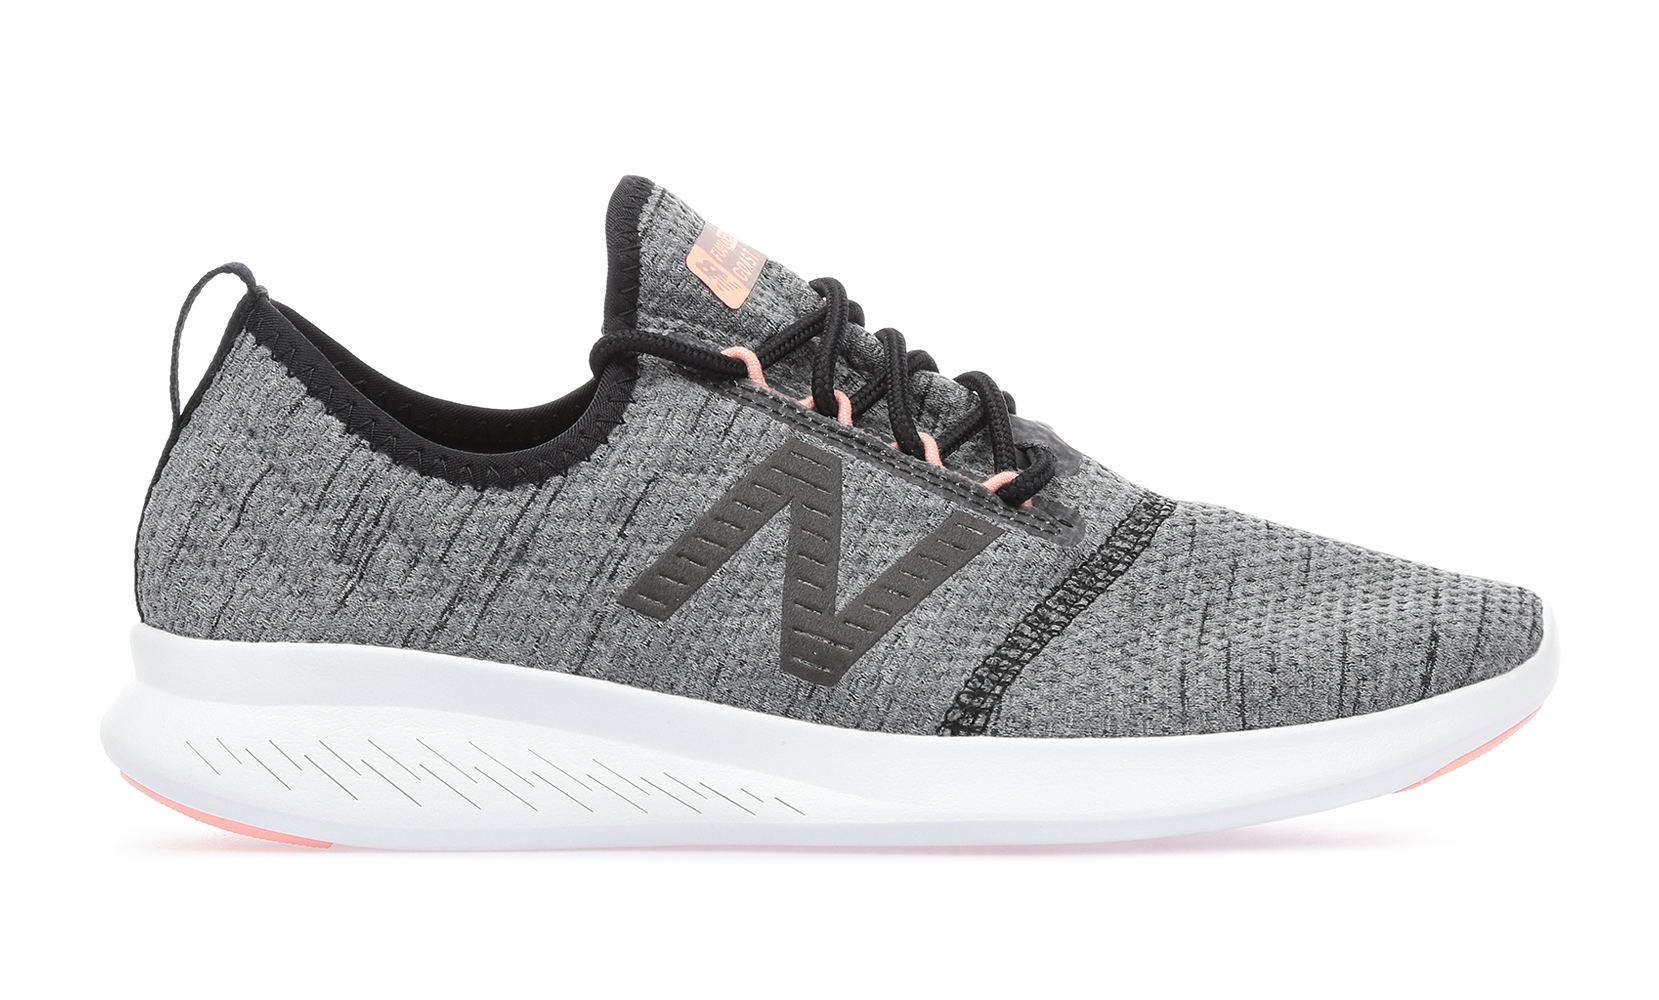 Жіноче взуття для бігу New Balance Fuel Core Trail Coast v4 WCSTLRT4 | New Balance